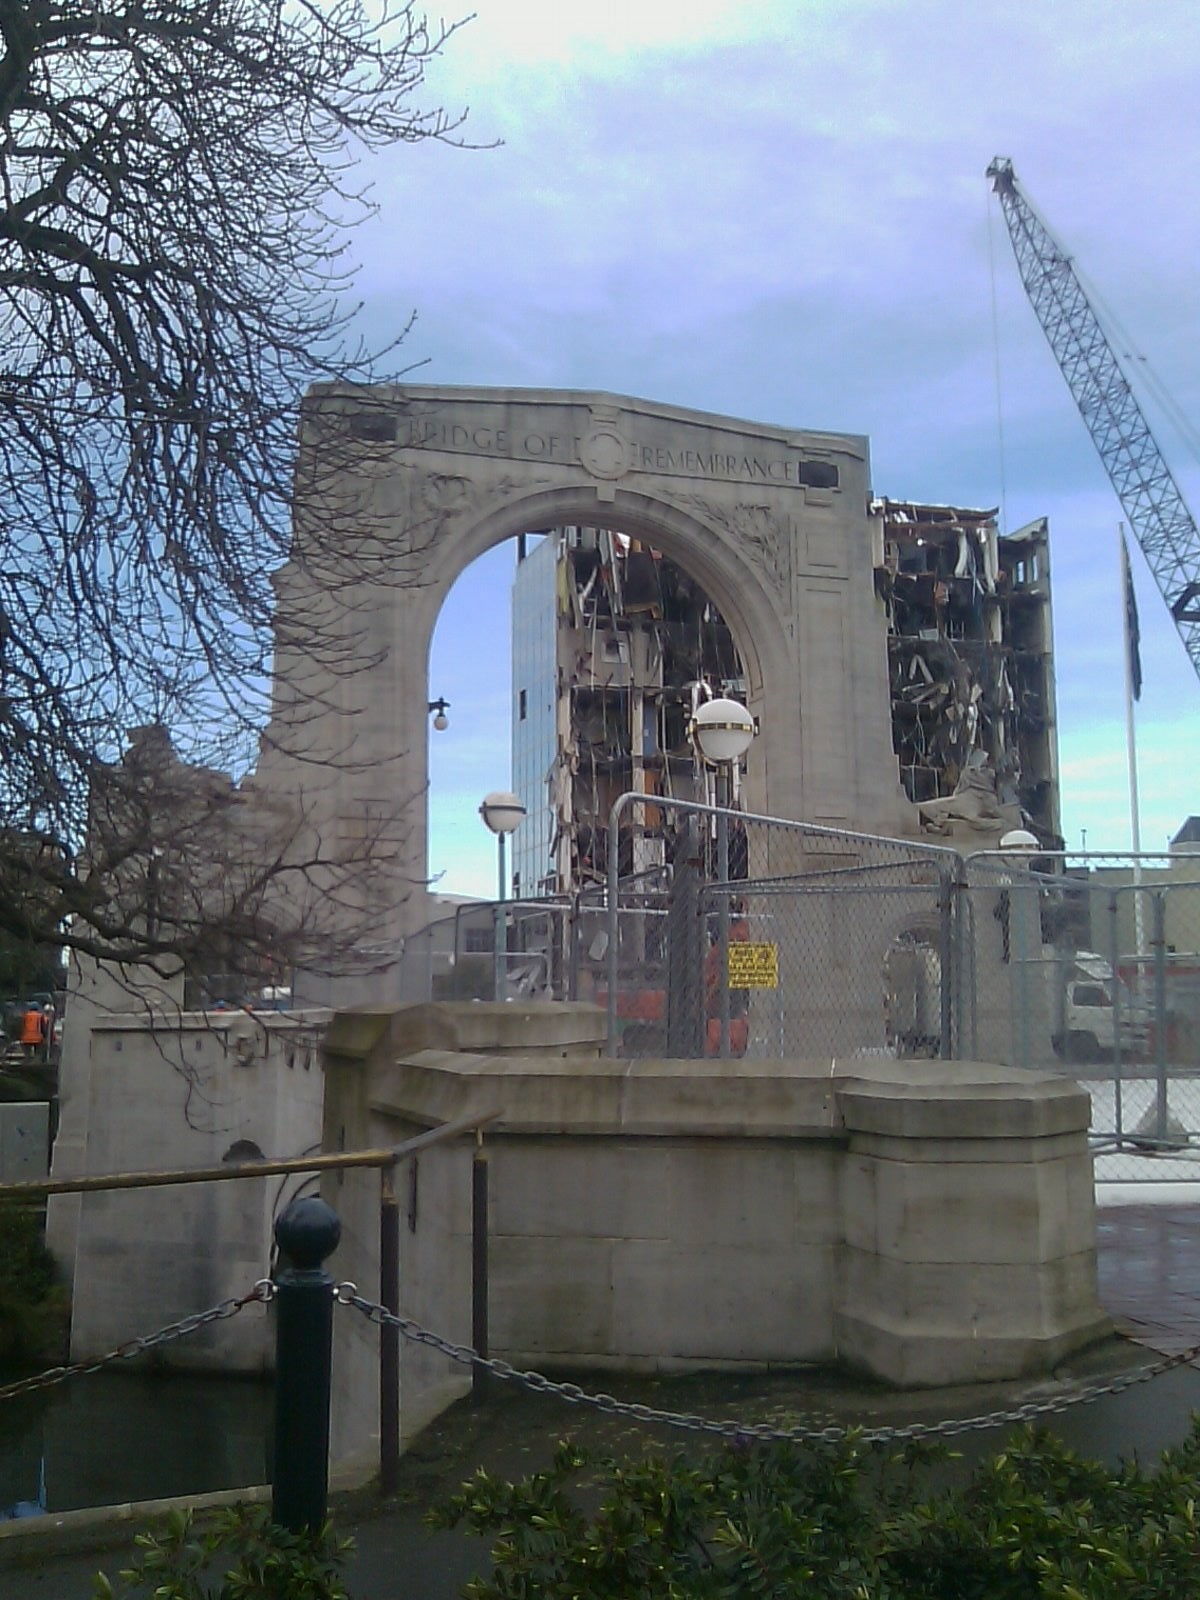 Bridge of Remembrance 1937 and 2011